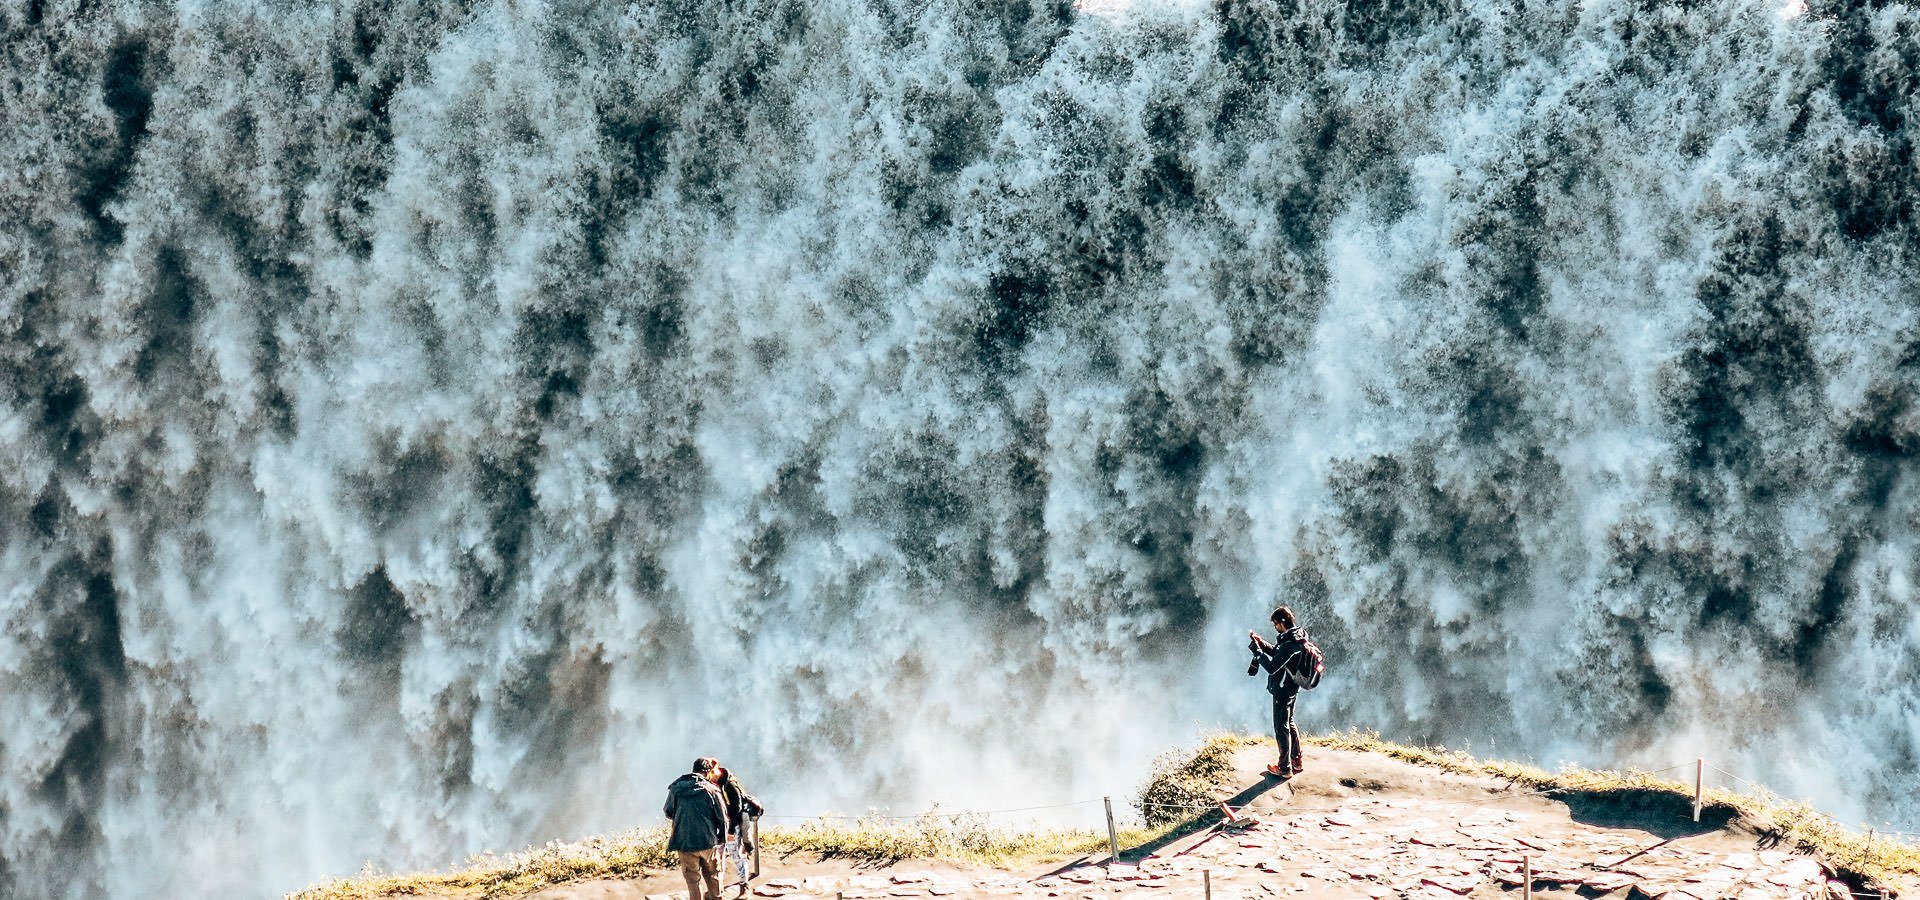 Through My Lens: A Summer Adventure Through Iceland | best photography locations iceland 2